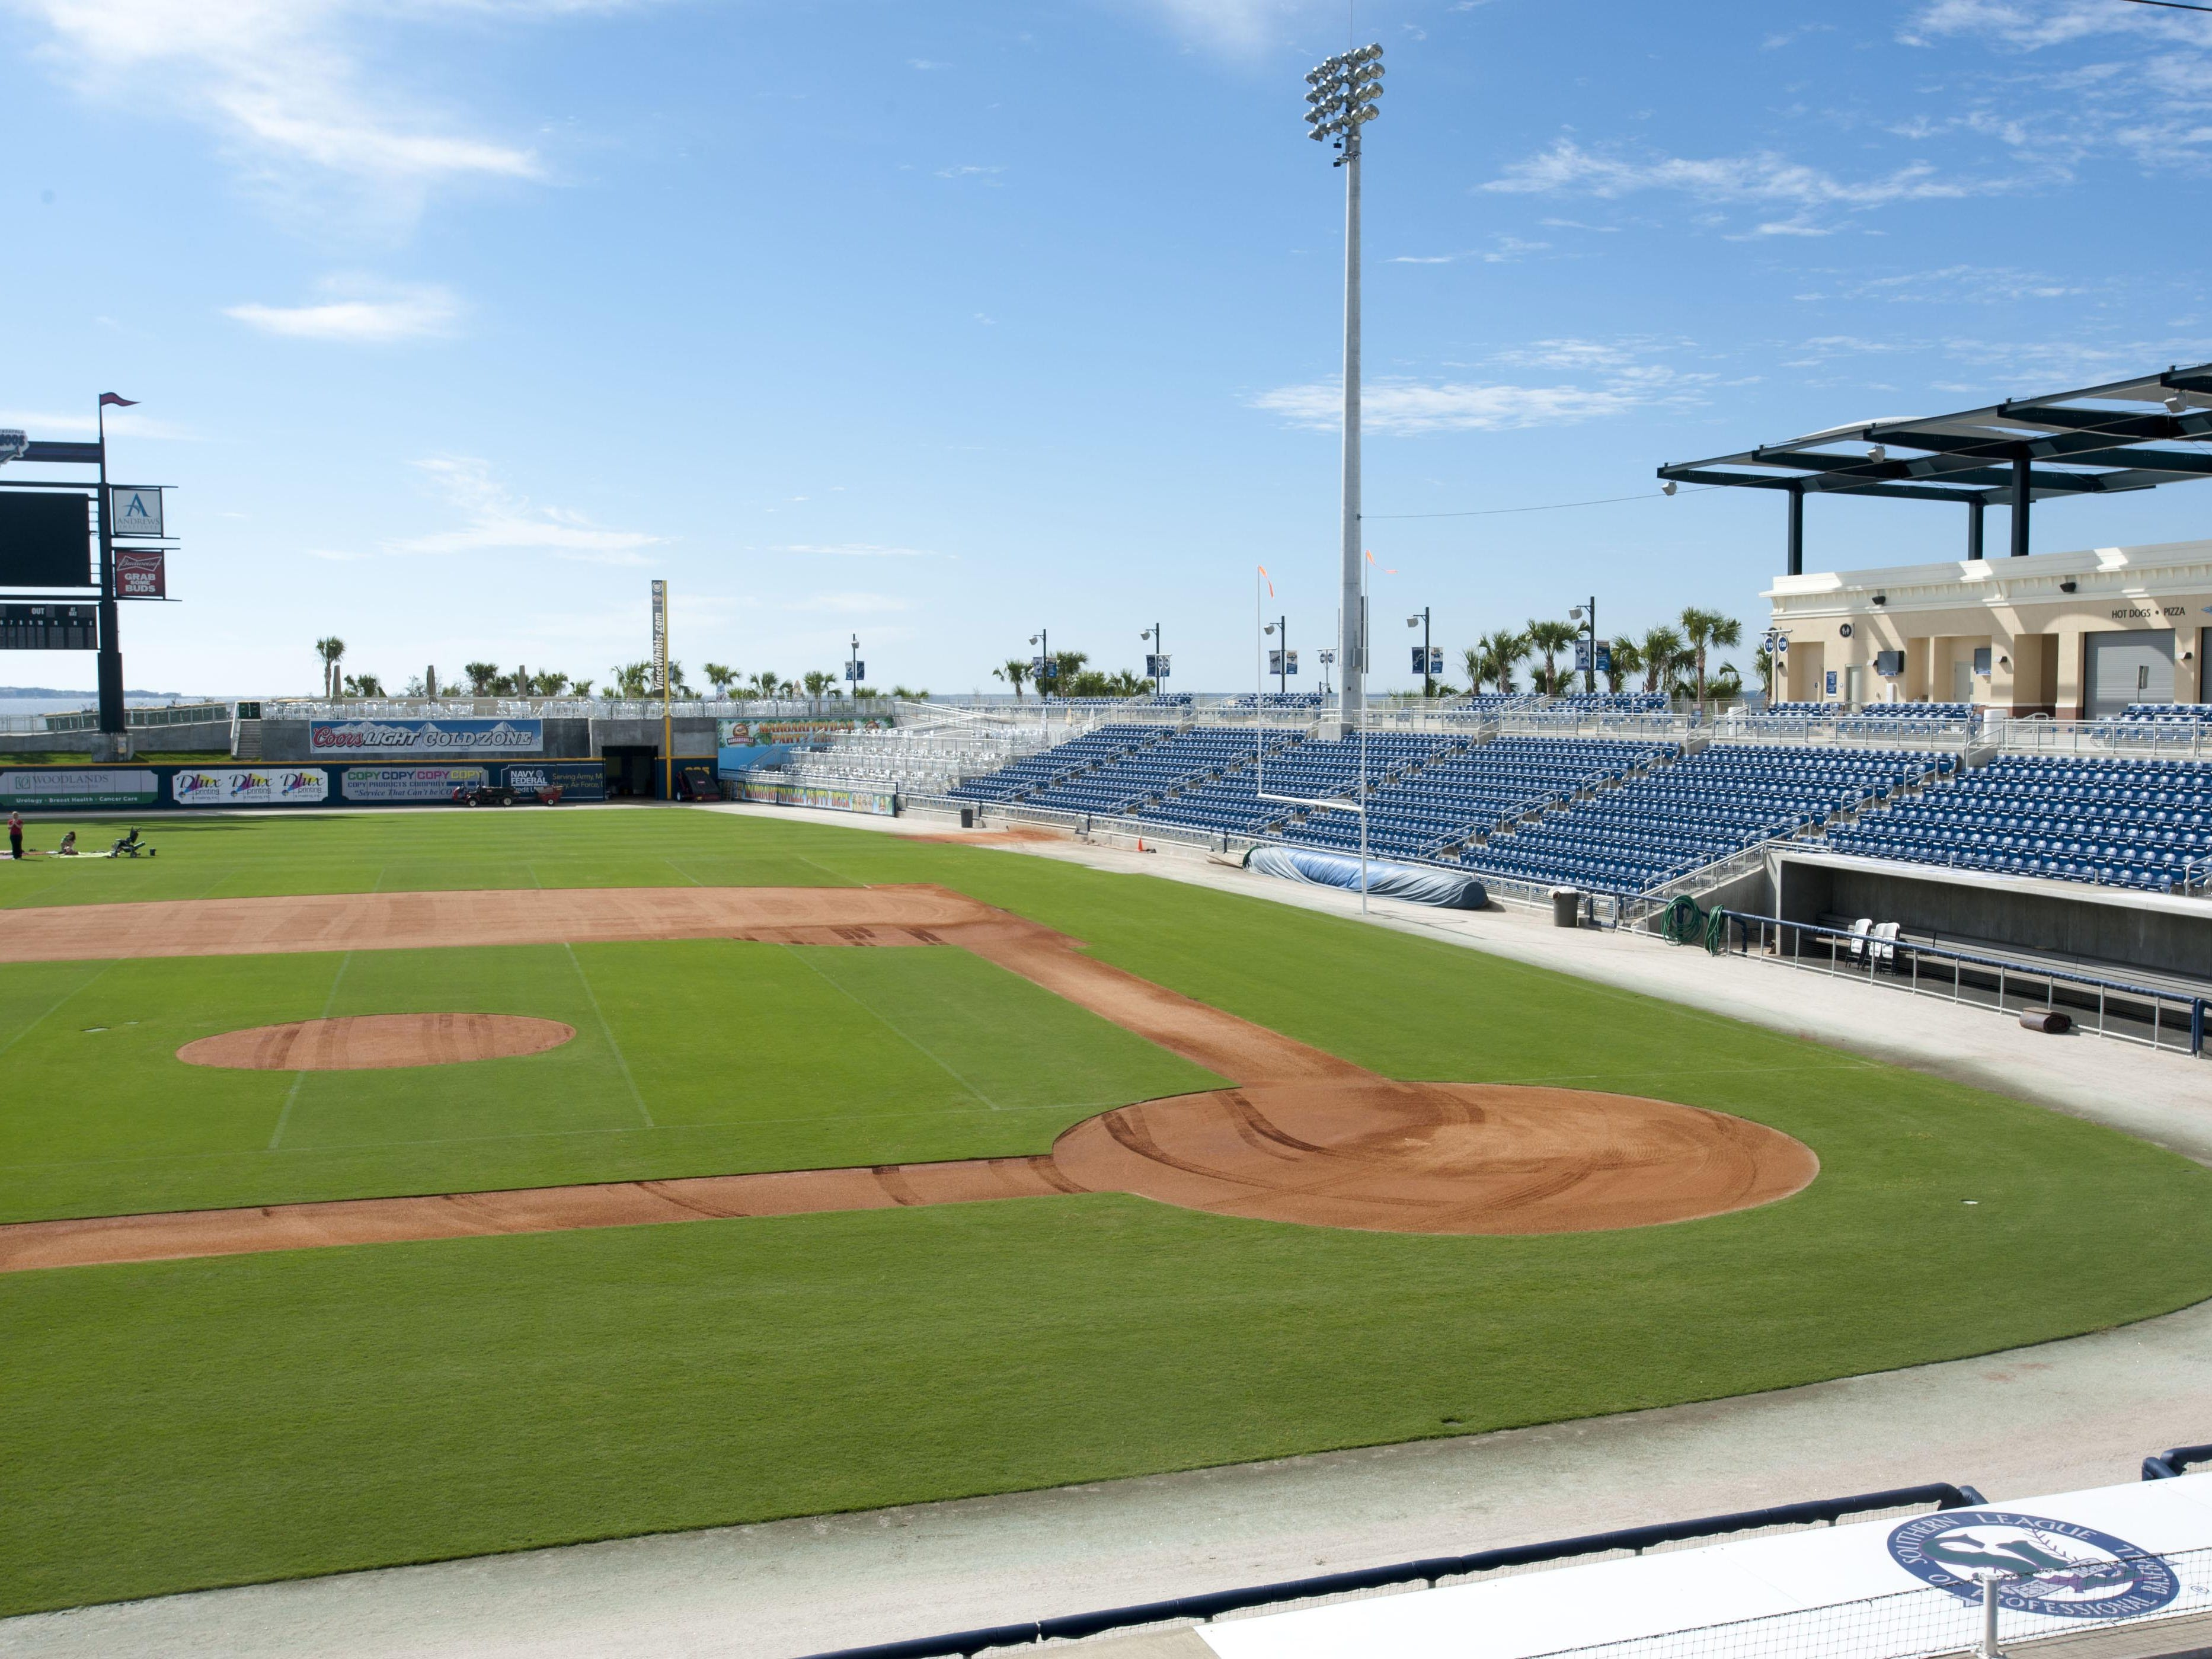 The Blue Wahoos Stadium received its latest honor when StadiumJourney.com ranked the ballpark No. 2 among the 160 minor league baseball stadiums in America.